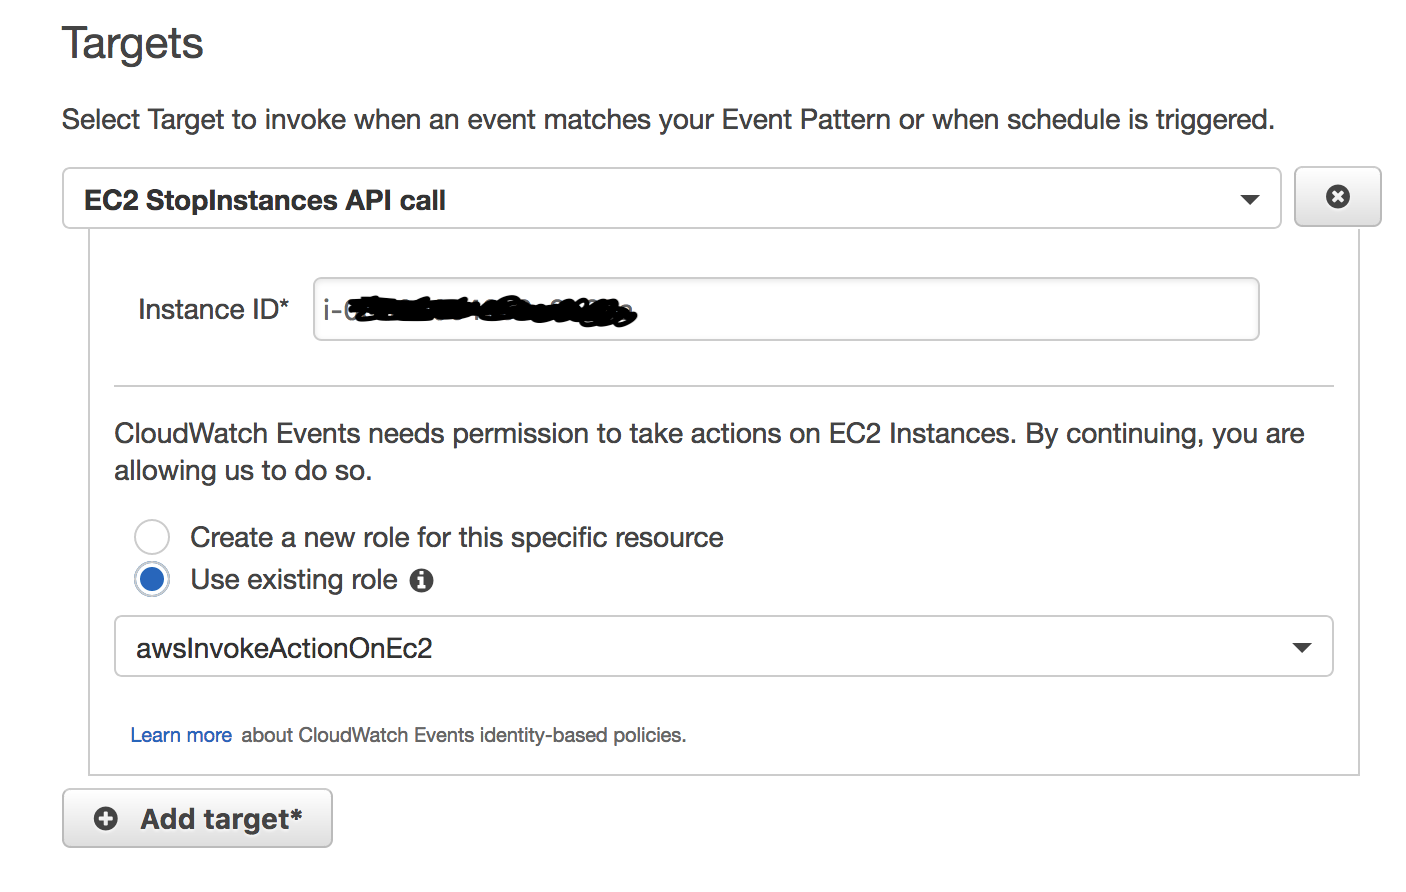 aws_cloudwatch_event_target role_arn and built-in target